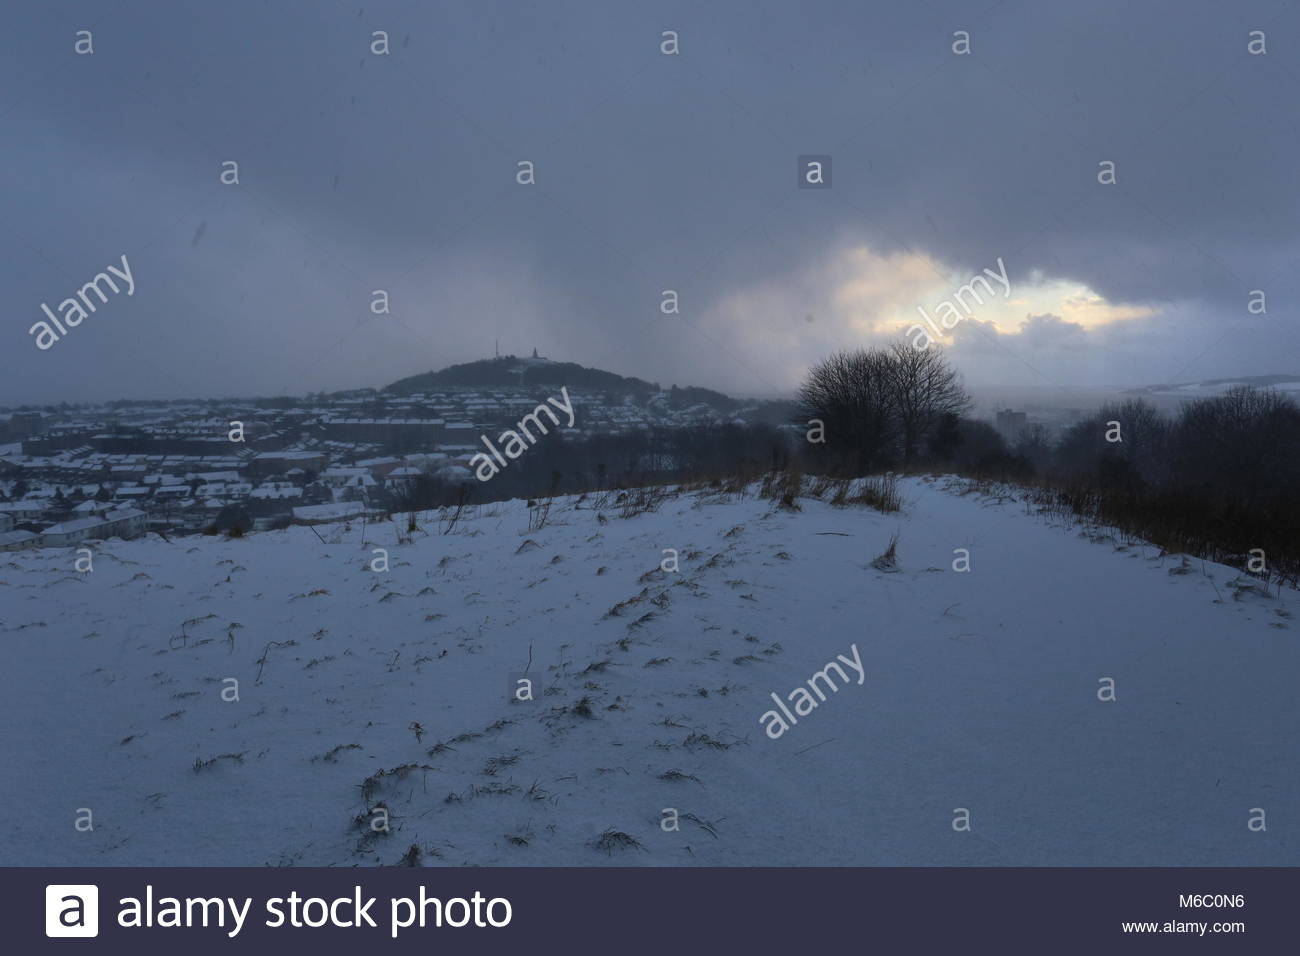 Dundee Law viewed from Balgay Hill with snow Dundee Scotland  March 2018 - Stock Image